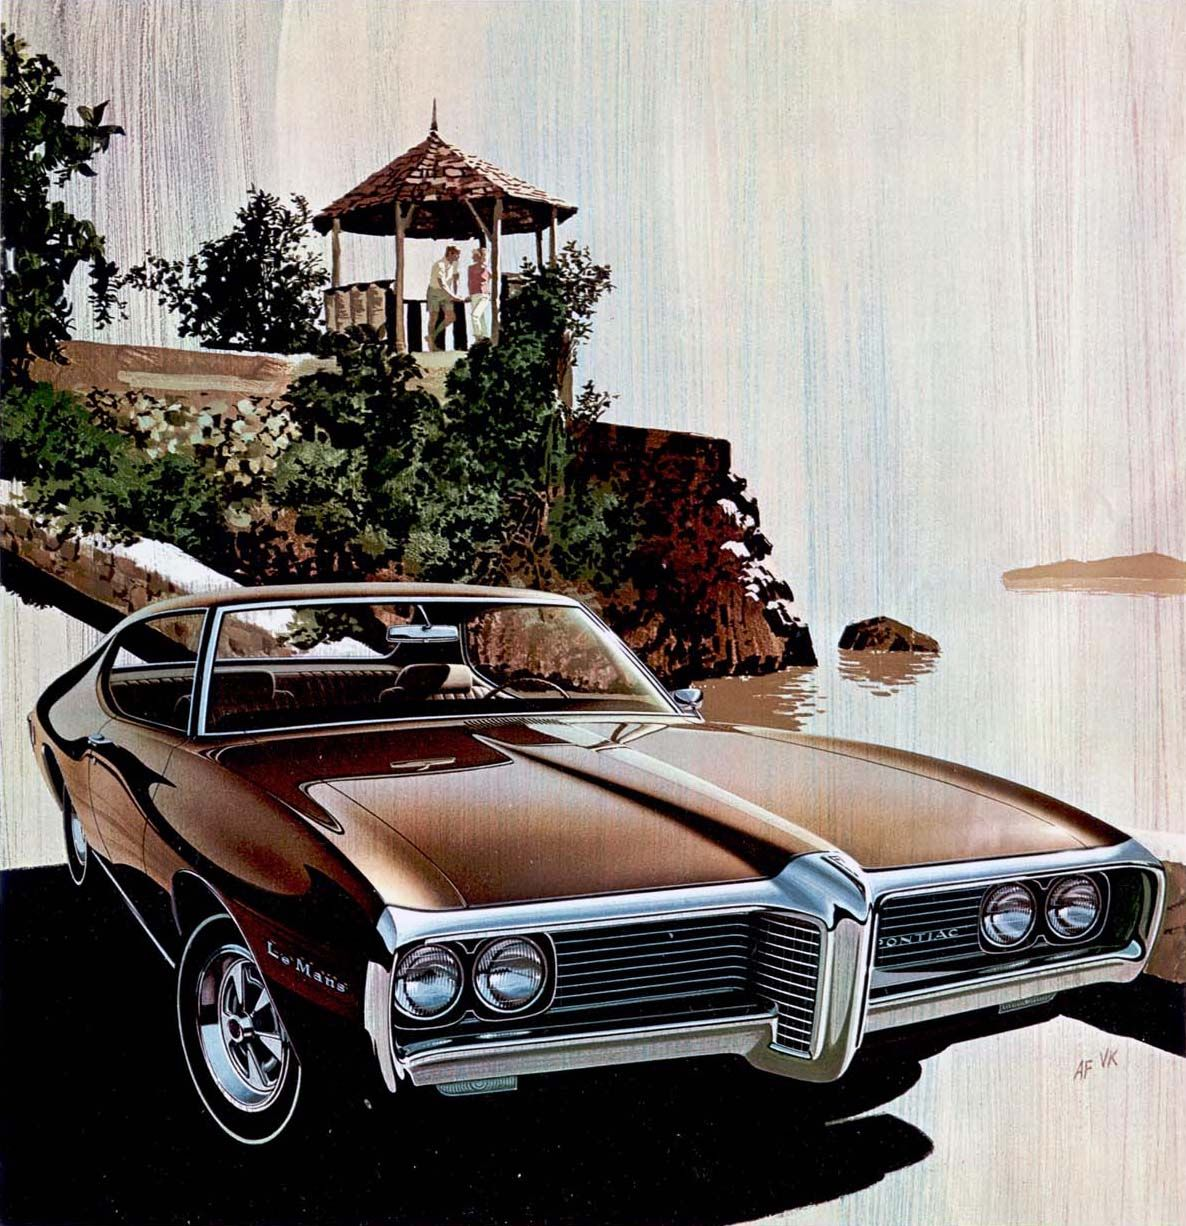 1969 Pontiac LeMans Hardtop Coupe – 'Hydra Gazeba': Art Fitzpatrick and Van Kauf…